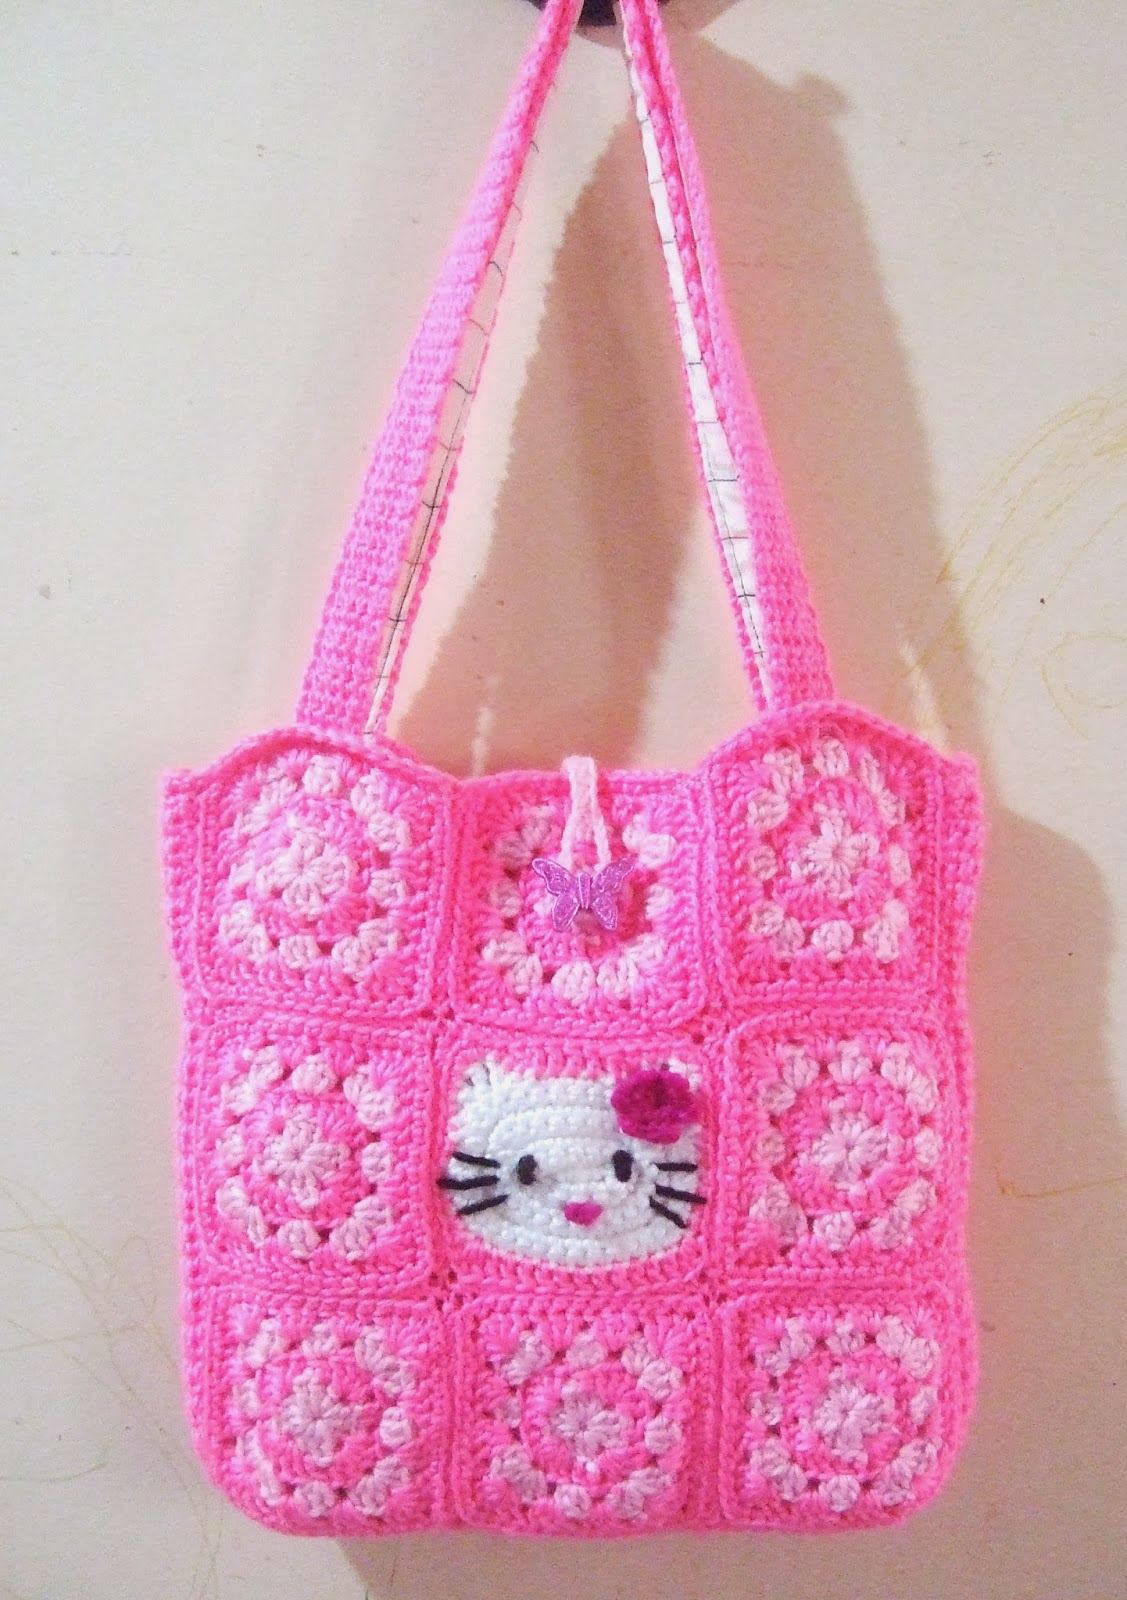 Crochet Purse Patterns Hello Kitty : Another Cup of Coffee: My Hello Kitty Crochet Tote Bag